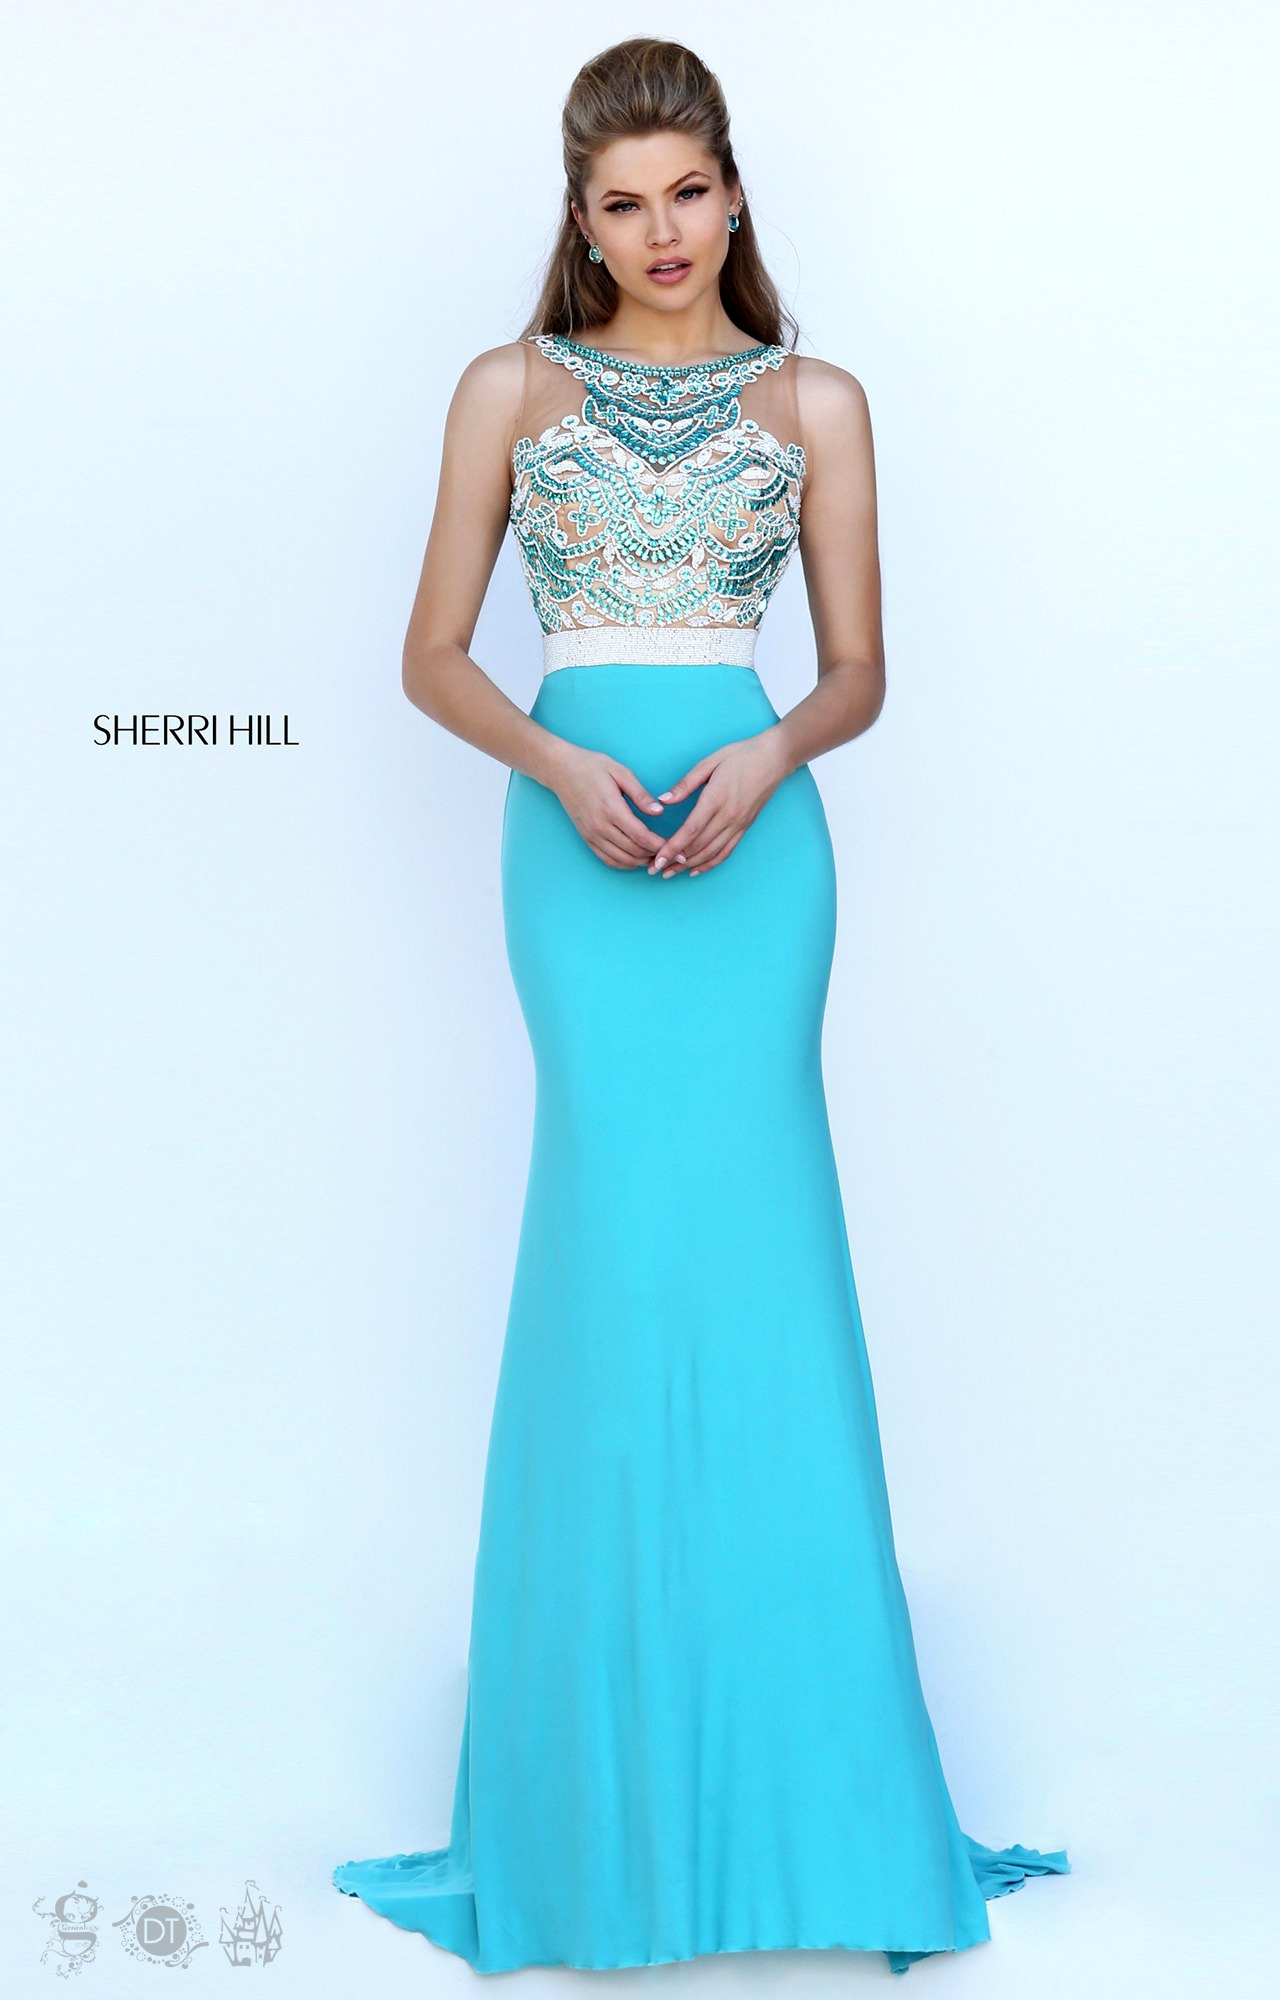 Old Fashioned Jersey Gardens Prom Dresses Image Collection - All ...